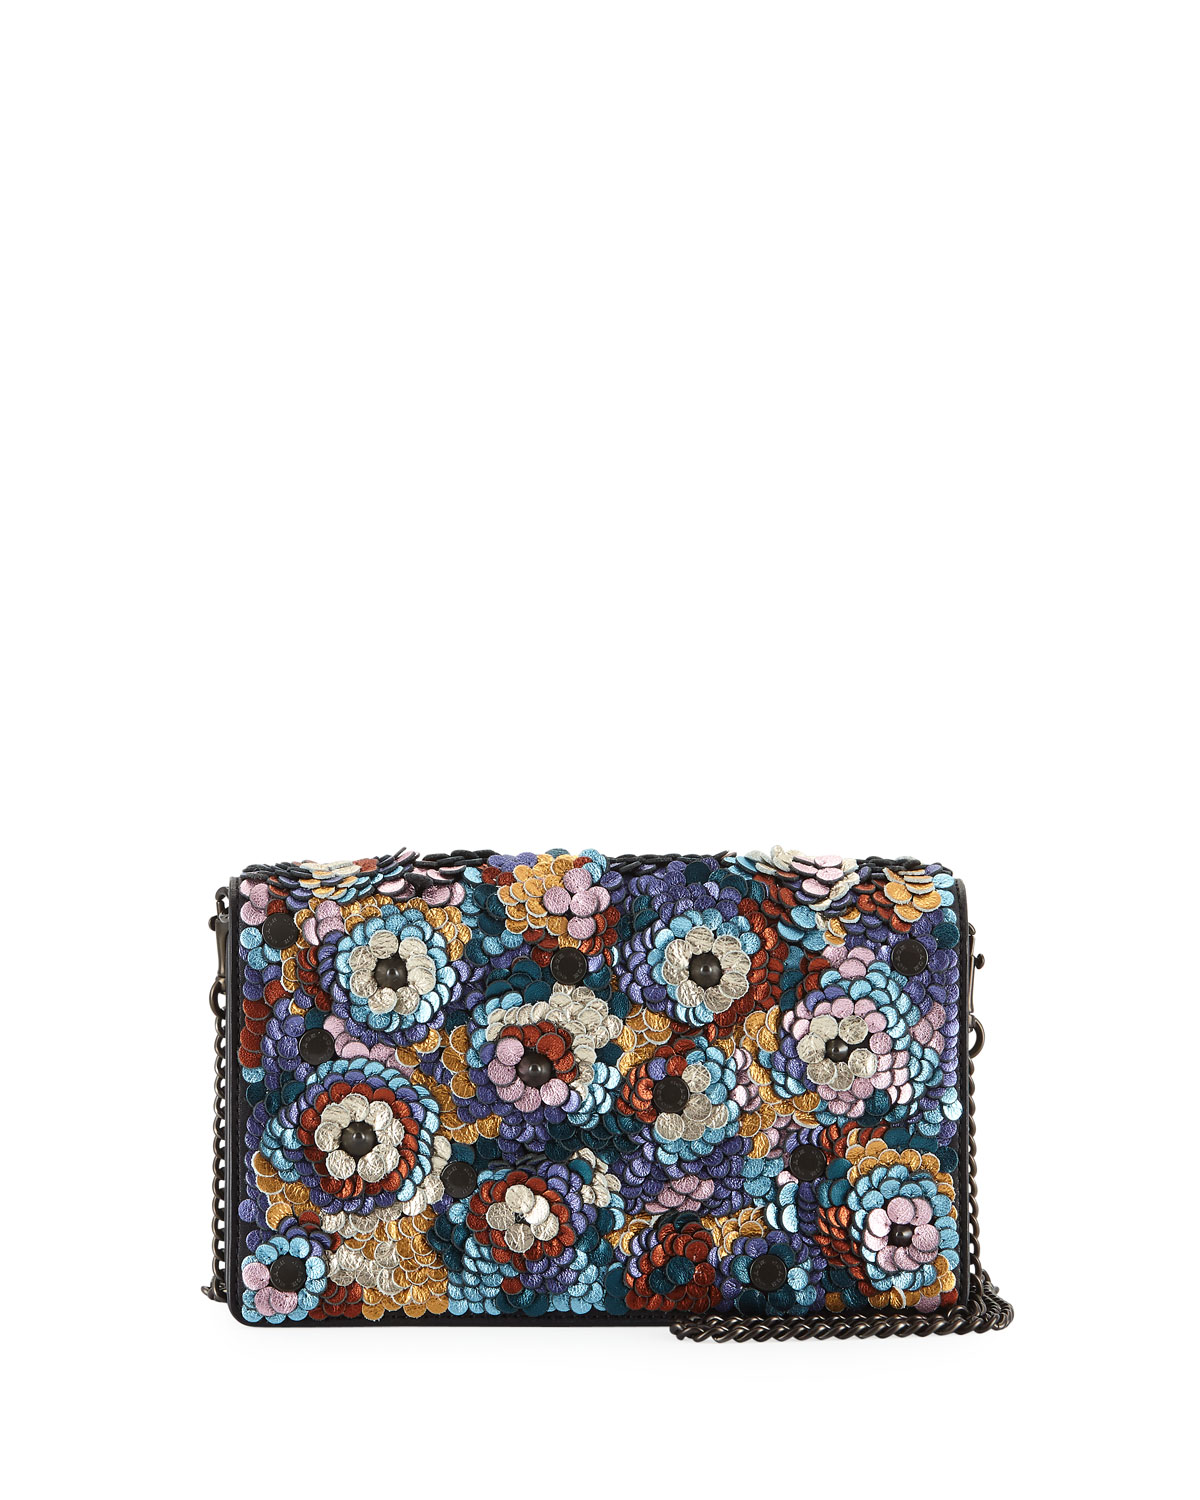 Coach 1941 Leather Sequined Fold Over Chain Clutch Bag